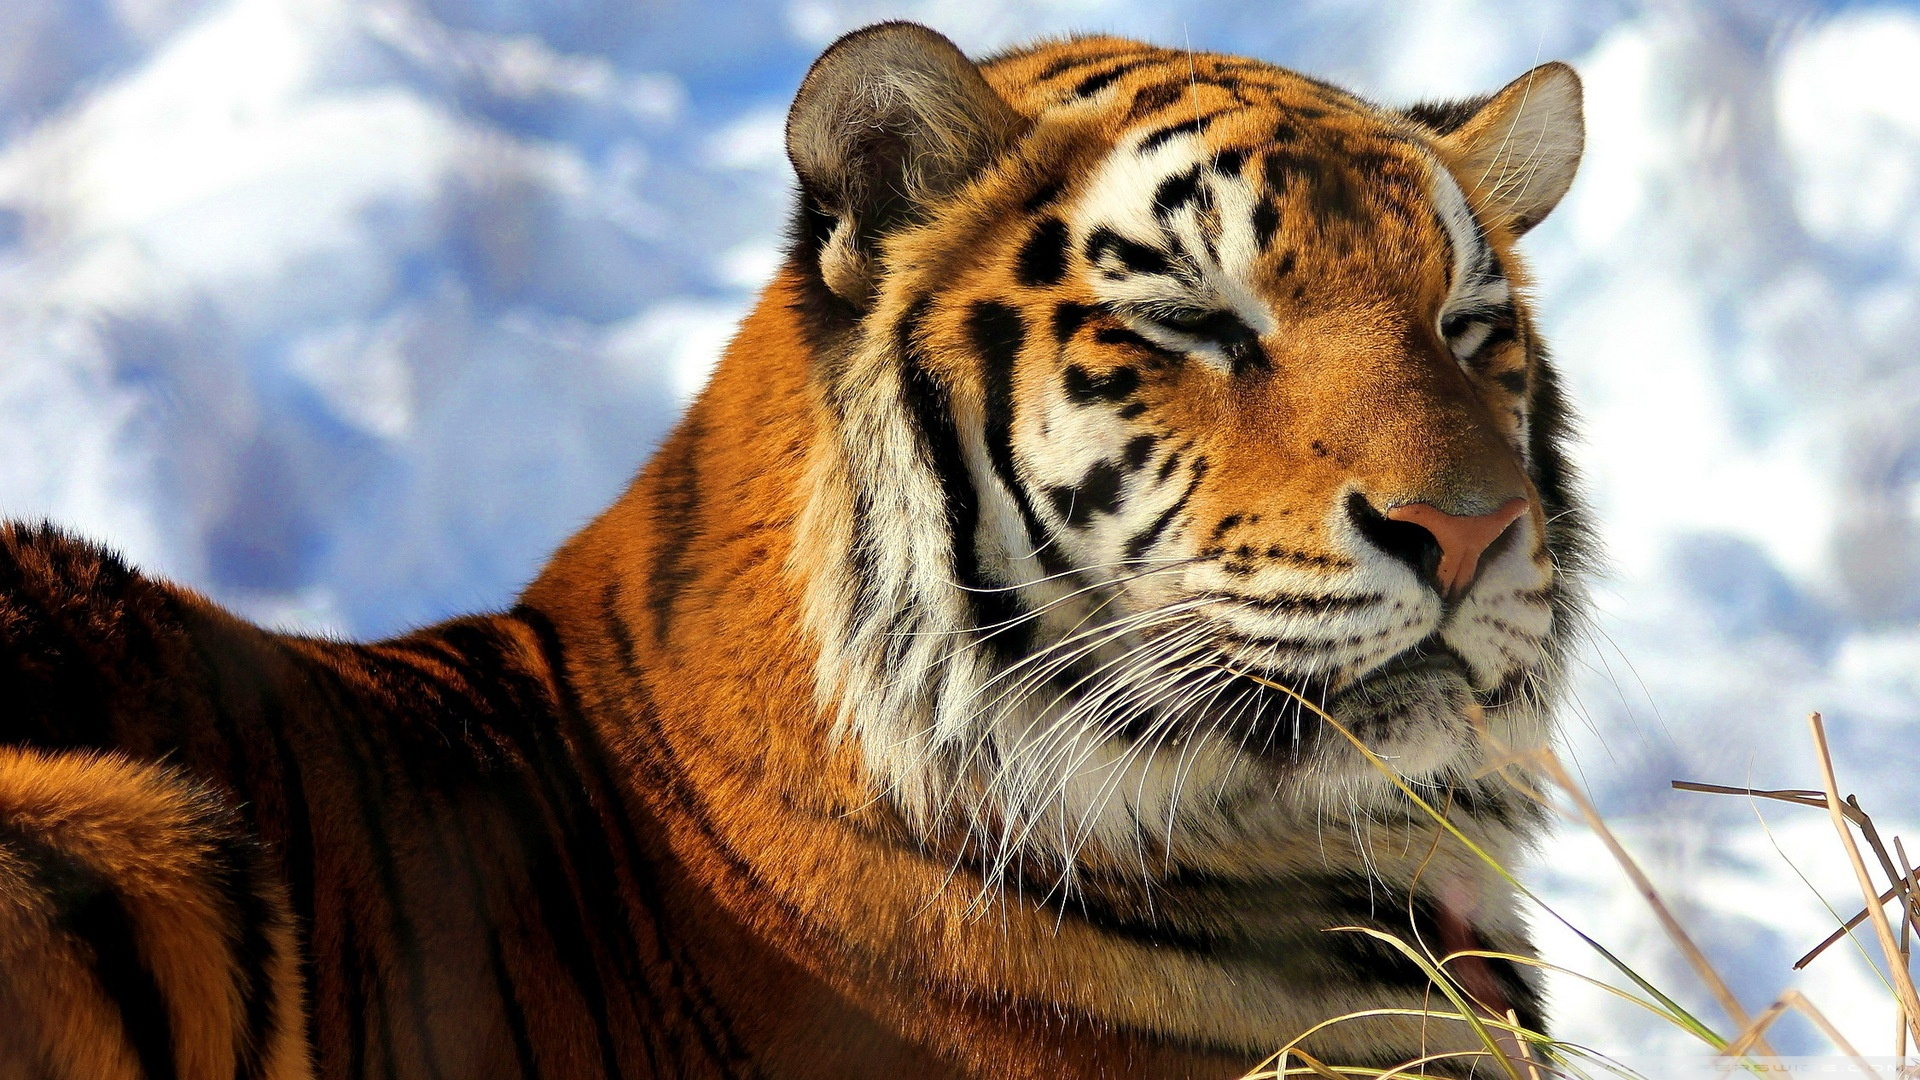 Siberian tiger hd wallpapers - Tiger hd wallpaper for pc ...